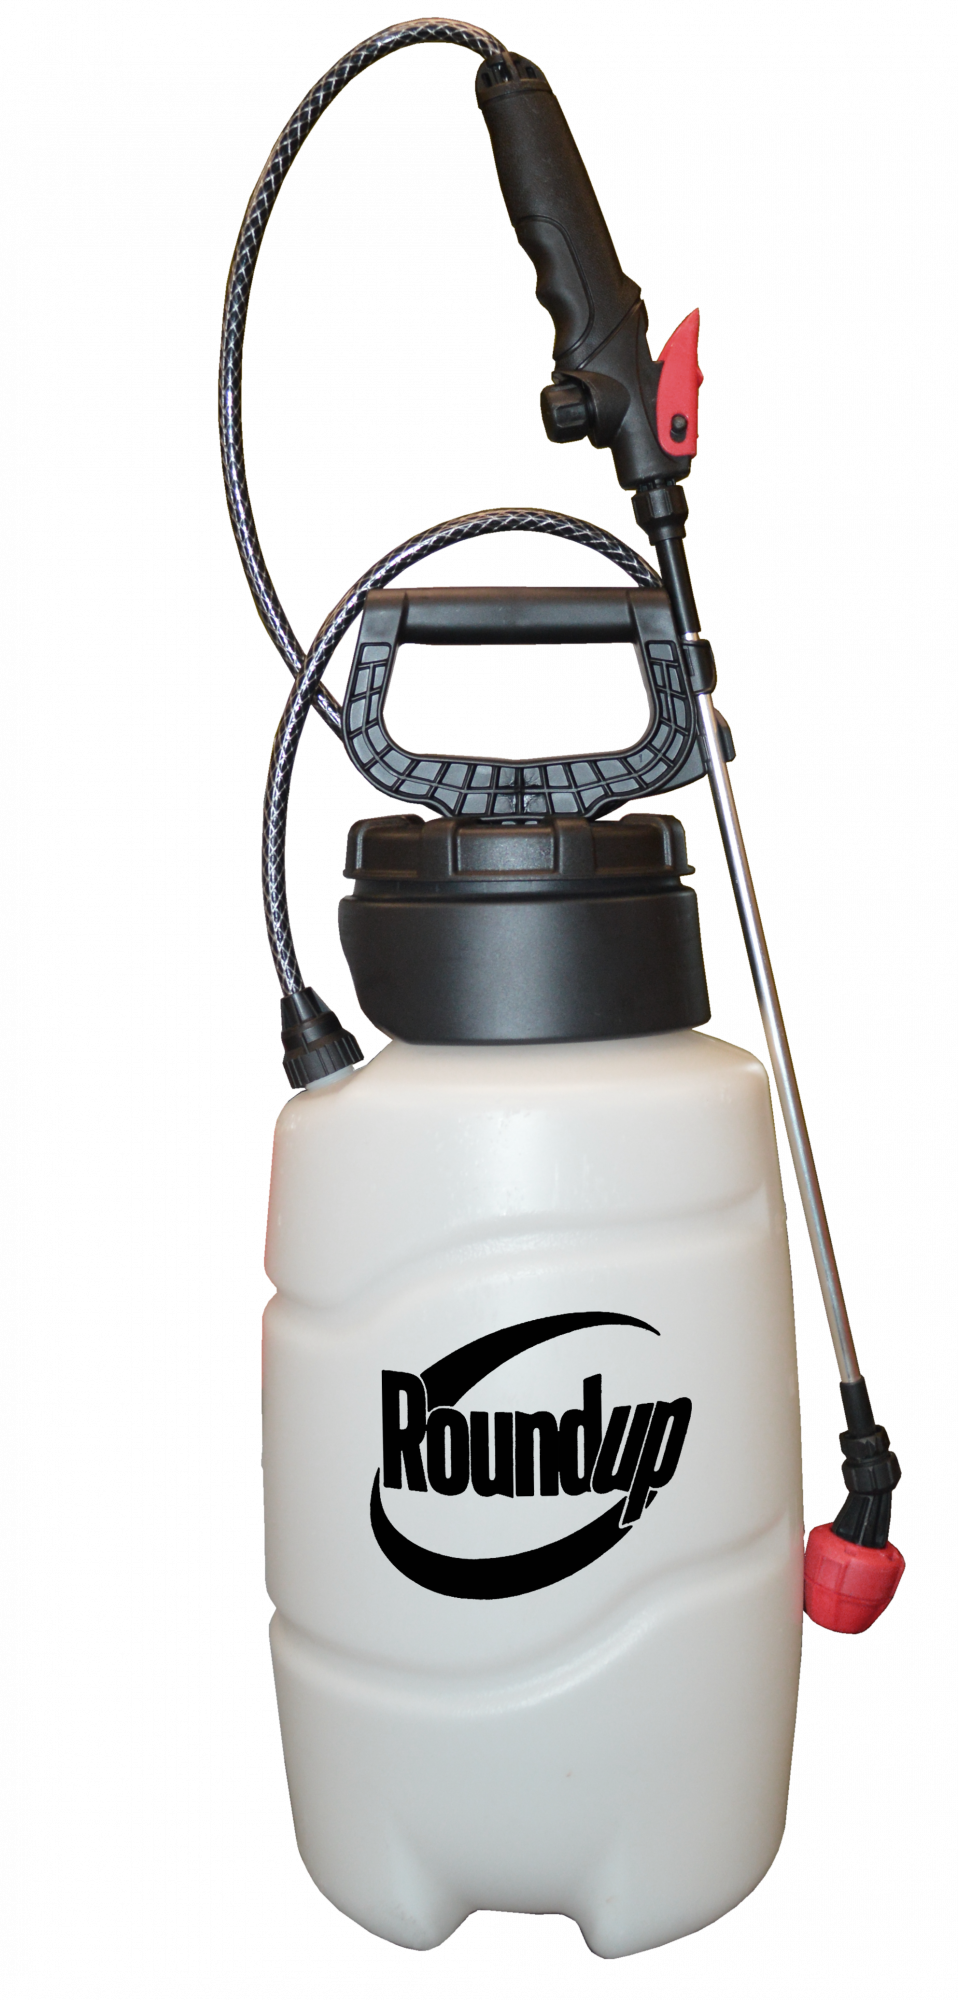 Roundup® 190459 2-Gallon Multi-Use Sprayer with 3-in-1 Nozzle